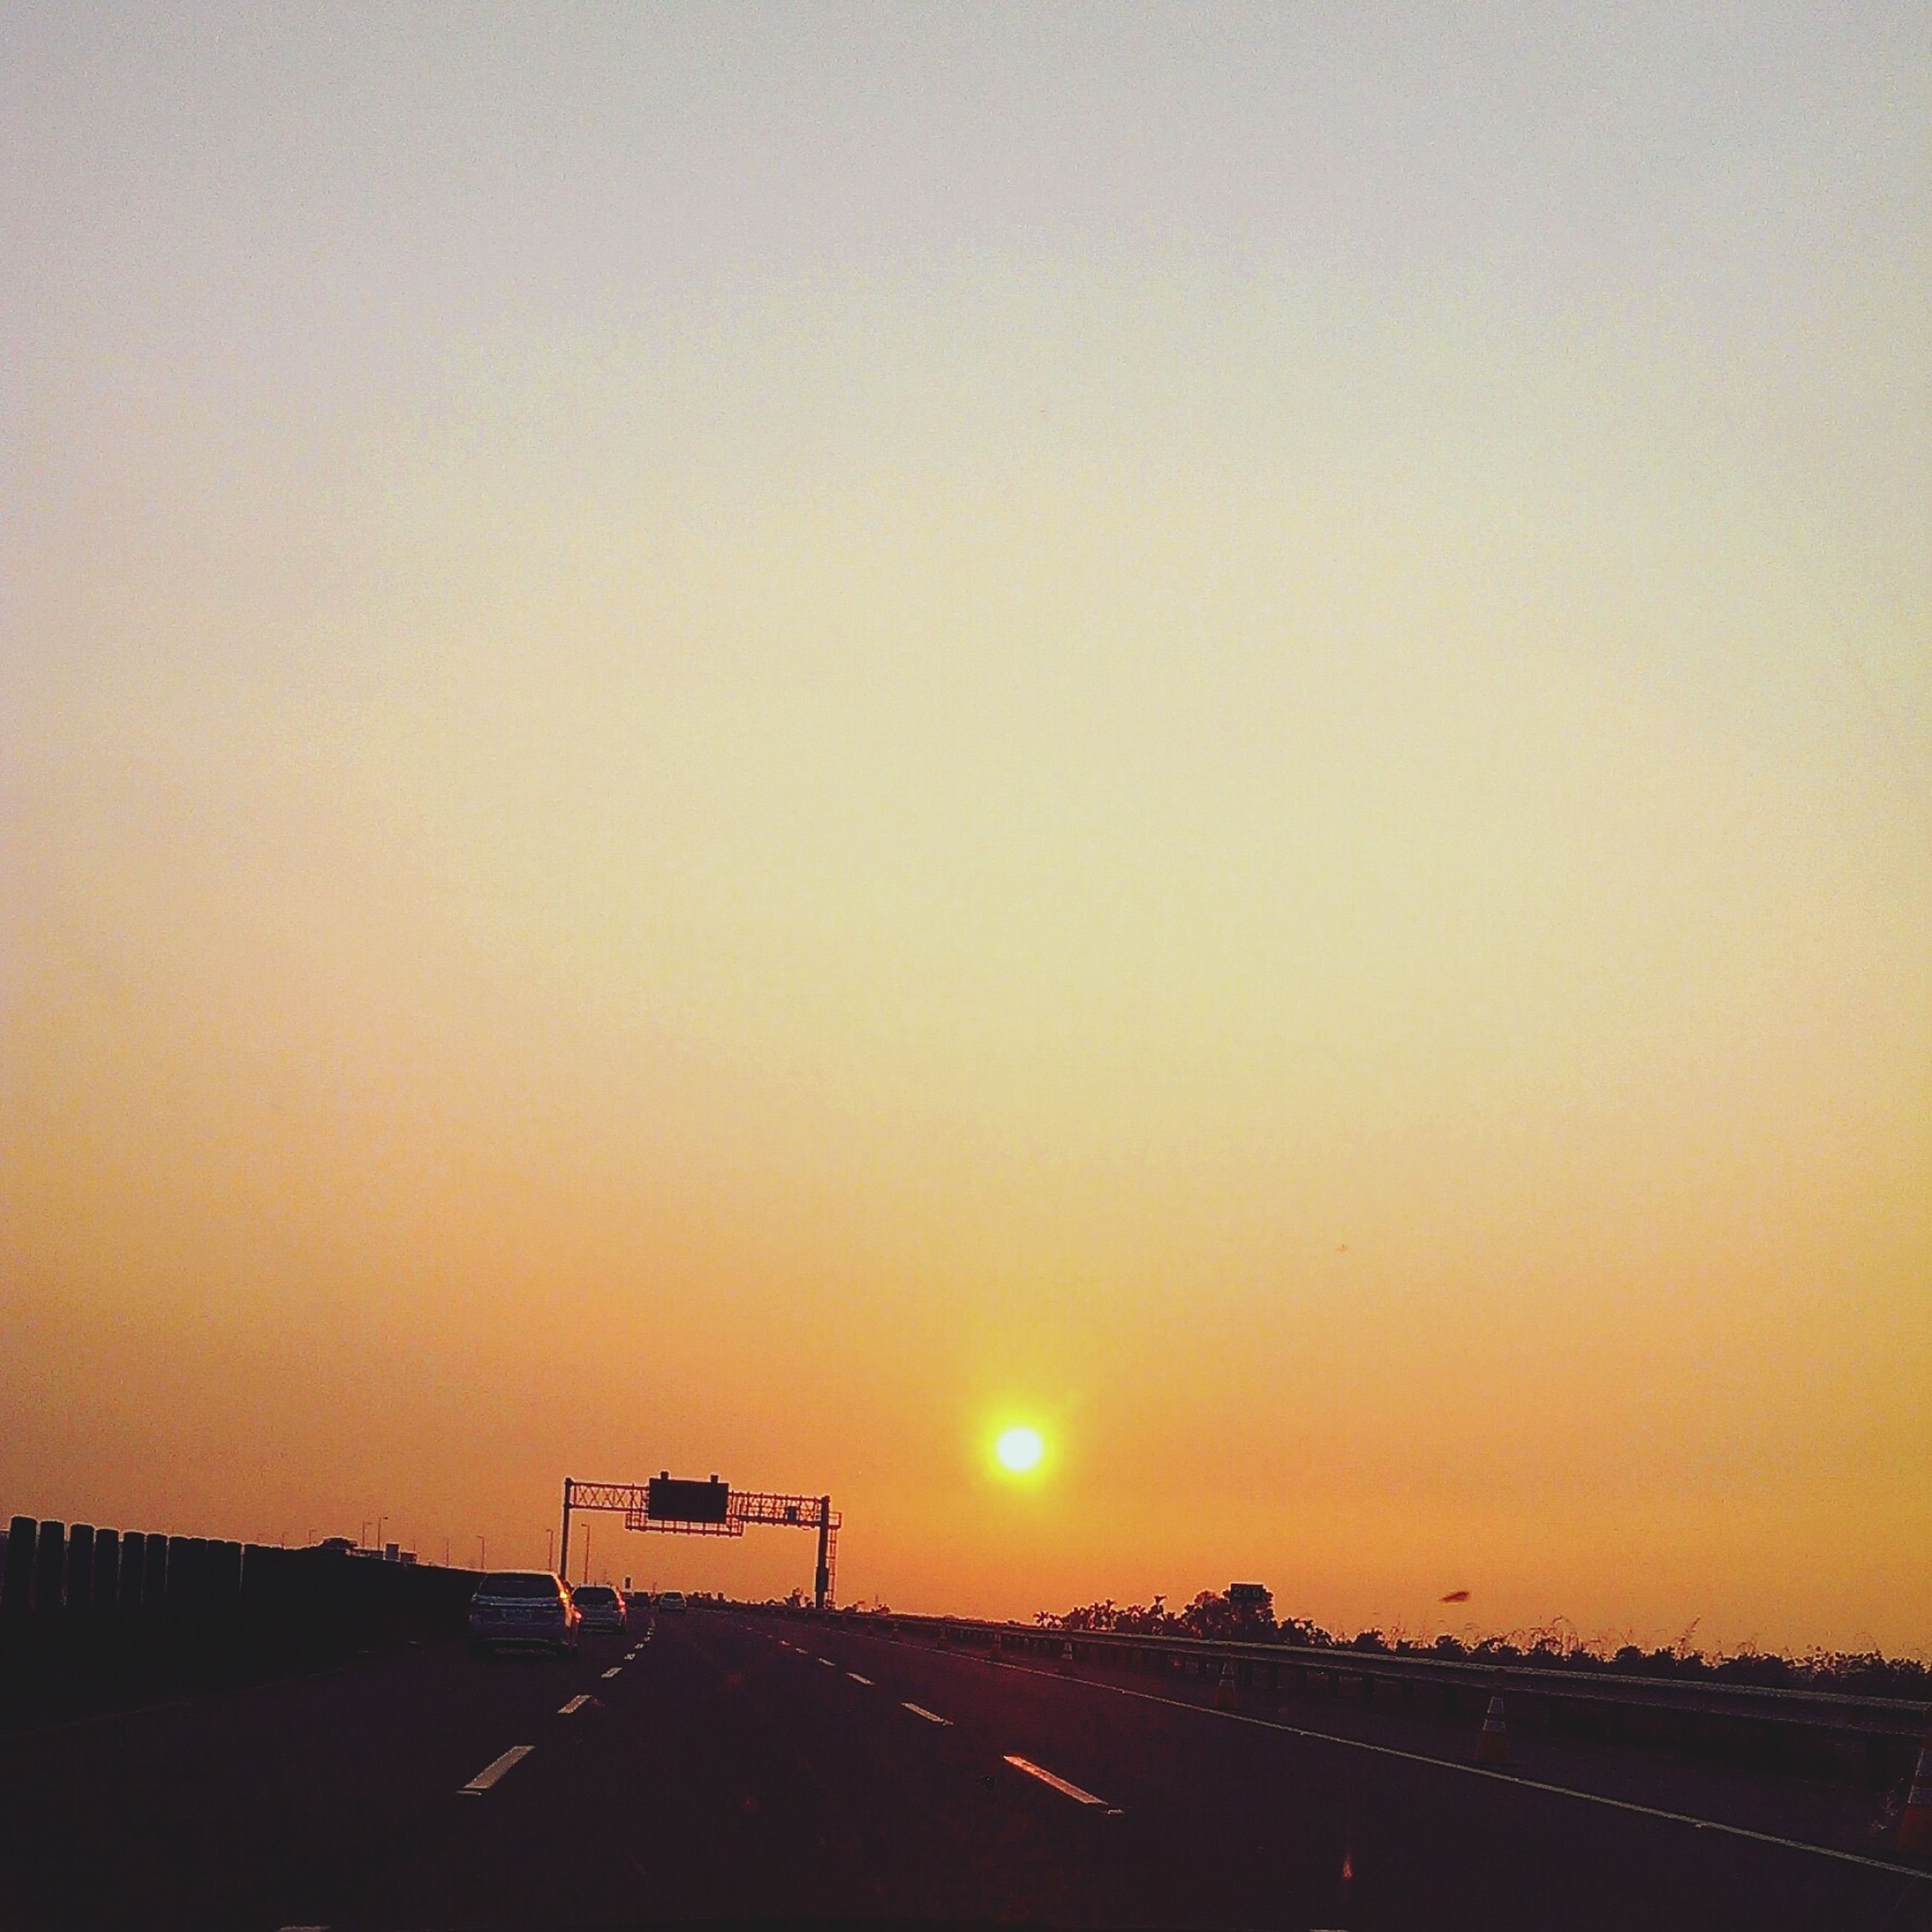 sunset, clear sky, copy space, orange color, sun, silhouette, sunlight, scenics, built structure, tranquility, landscape, tranquil scene, beauty in nature, nature, architecture, road, transportation, outdoors, no people, idyllic